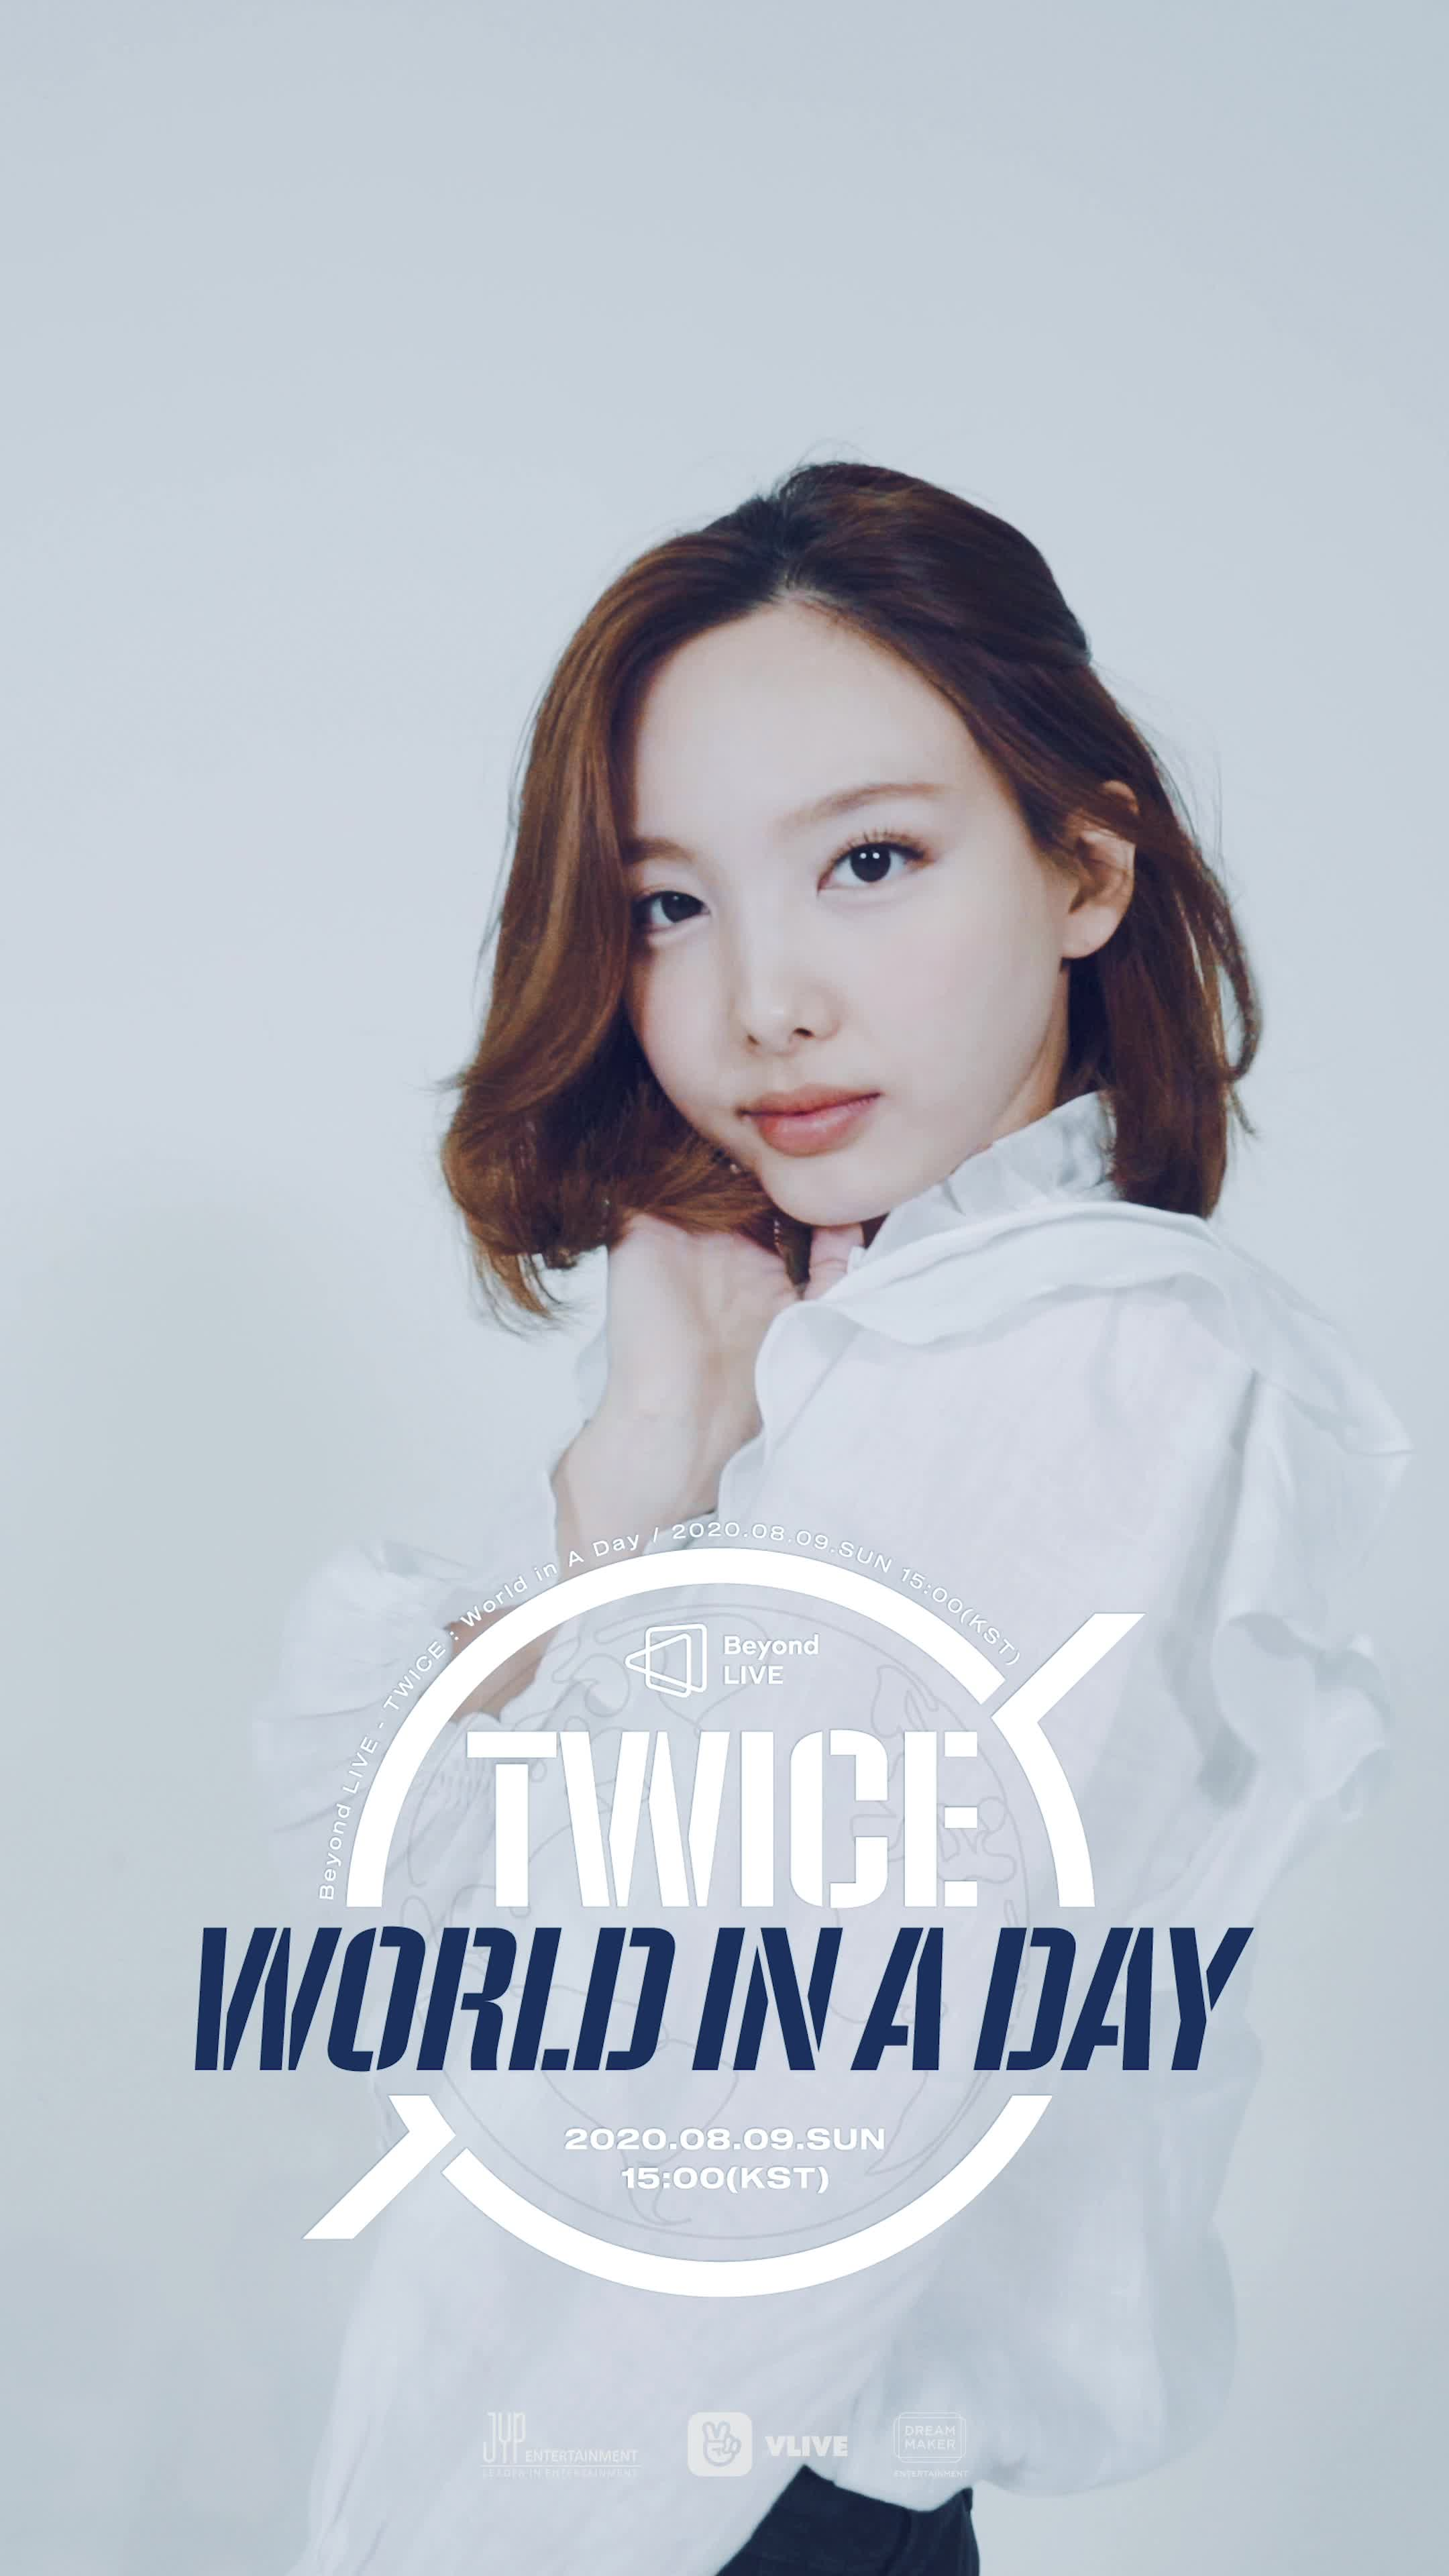 [Beyond LIVE - TWICE : World in A Day] Moving Poster - NAYEON